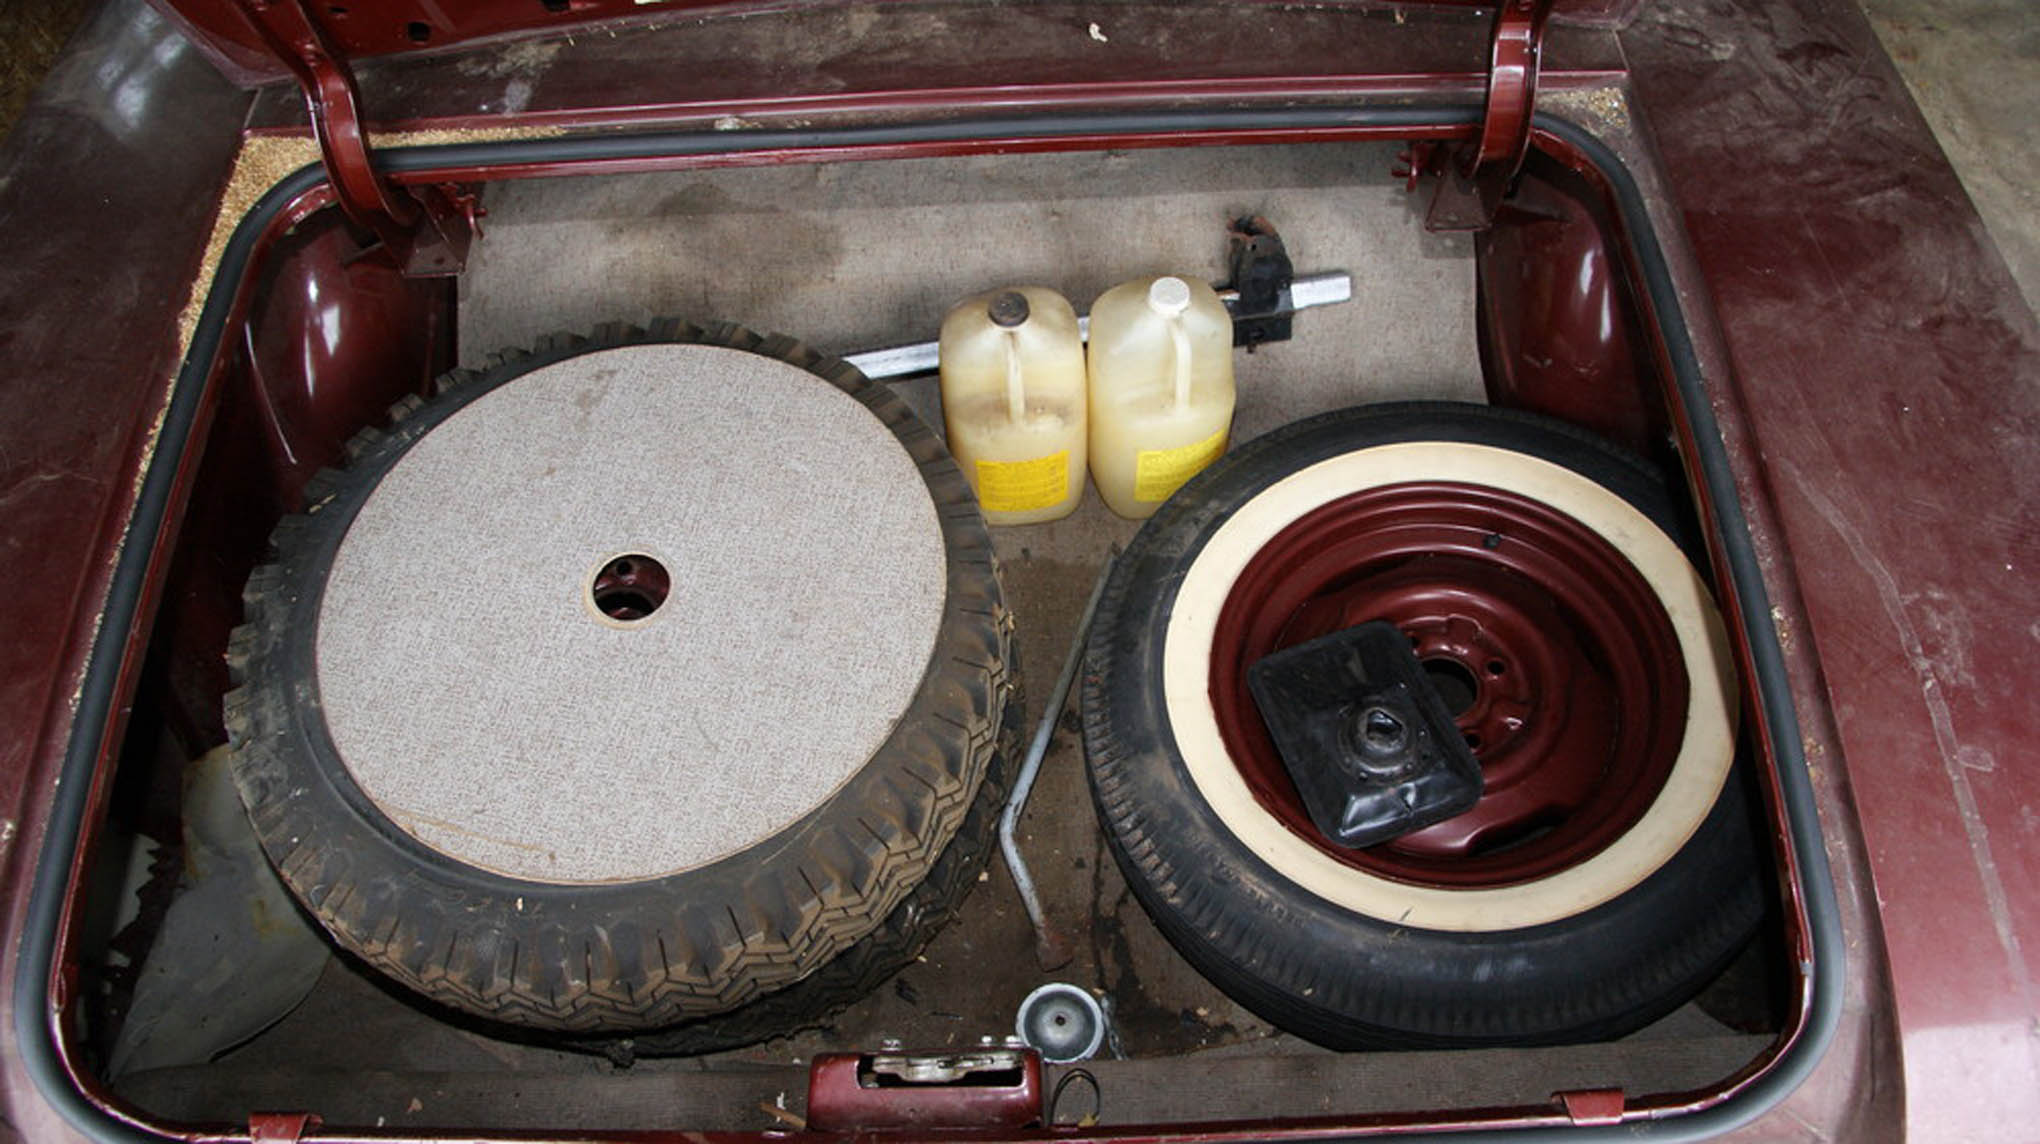 Two snow tires and two extra jugs of Oldsmobile Turbo-Rocket fluid were found in the trunk along with the original spare.